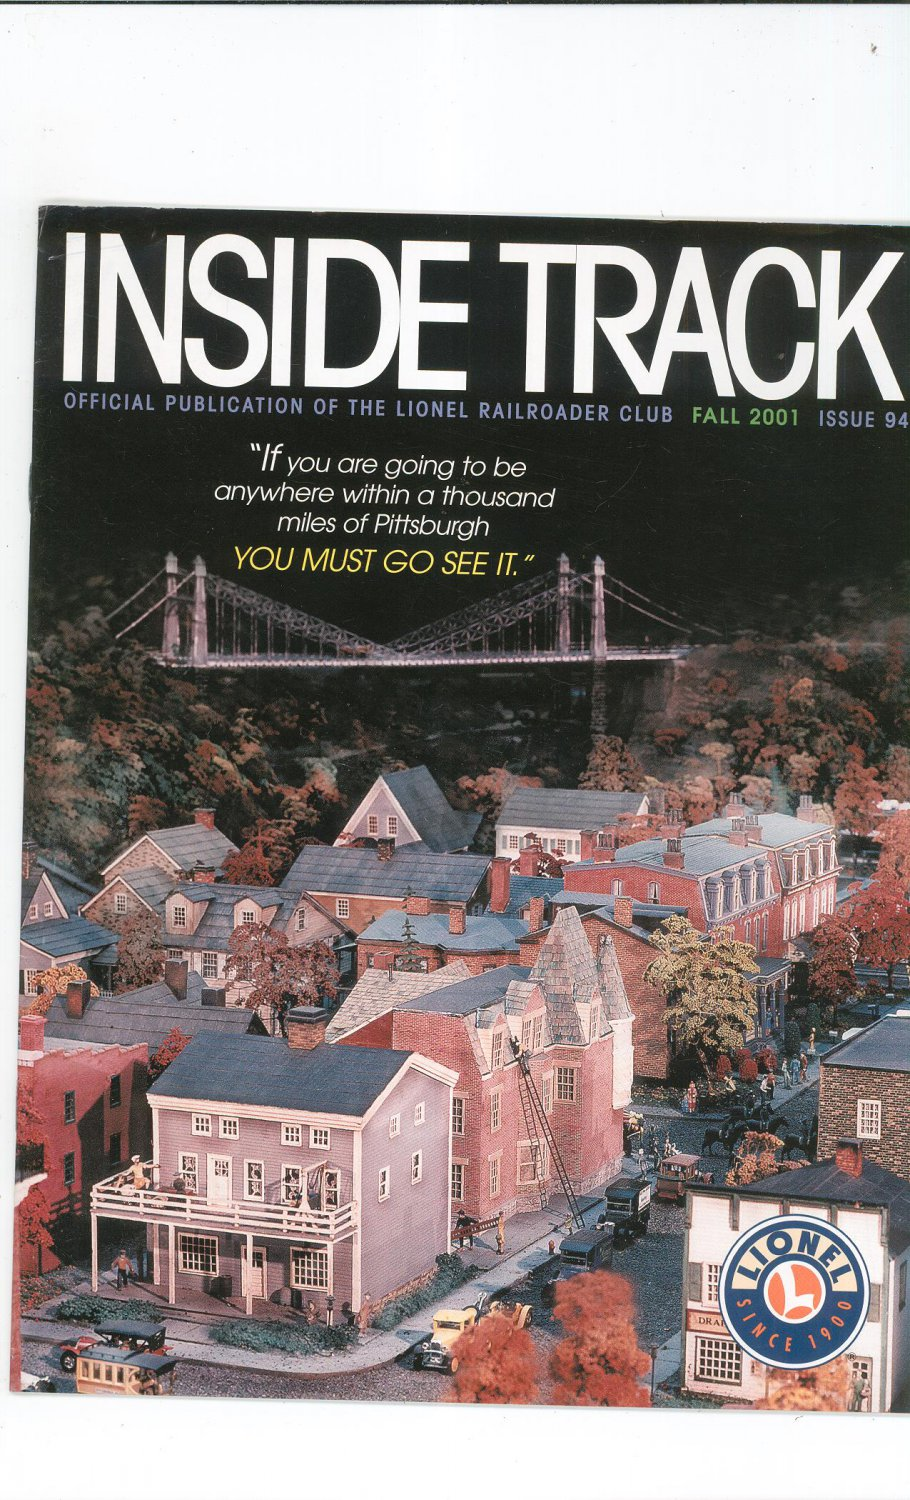 Lionel Railroader Club Inside Track Fall 2001 Issue 95 Not PDF Train Free Shipping Offer